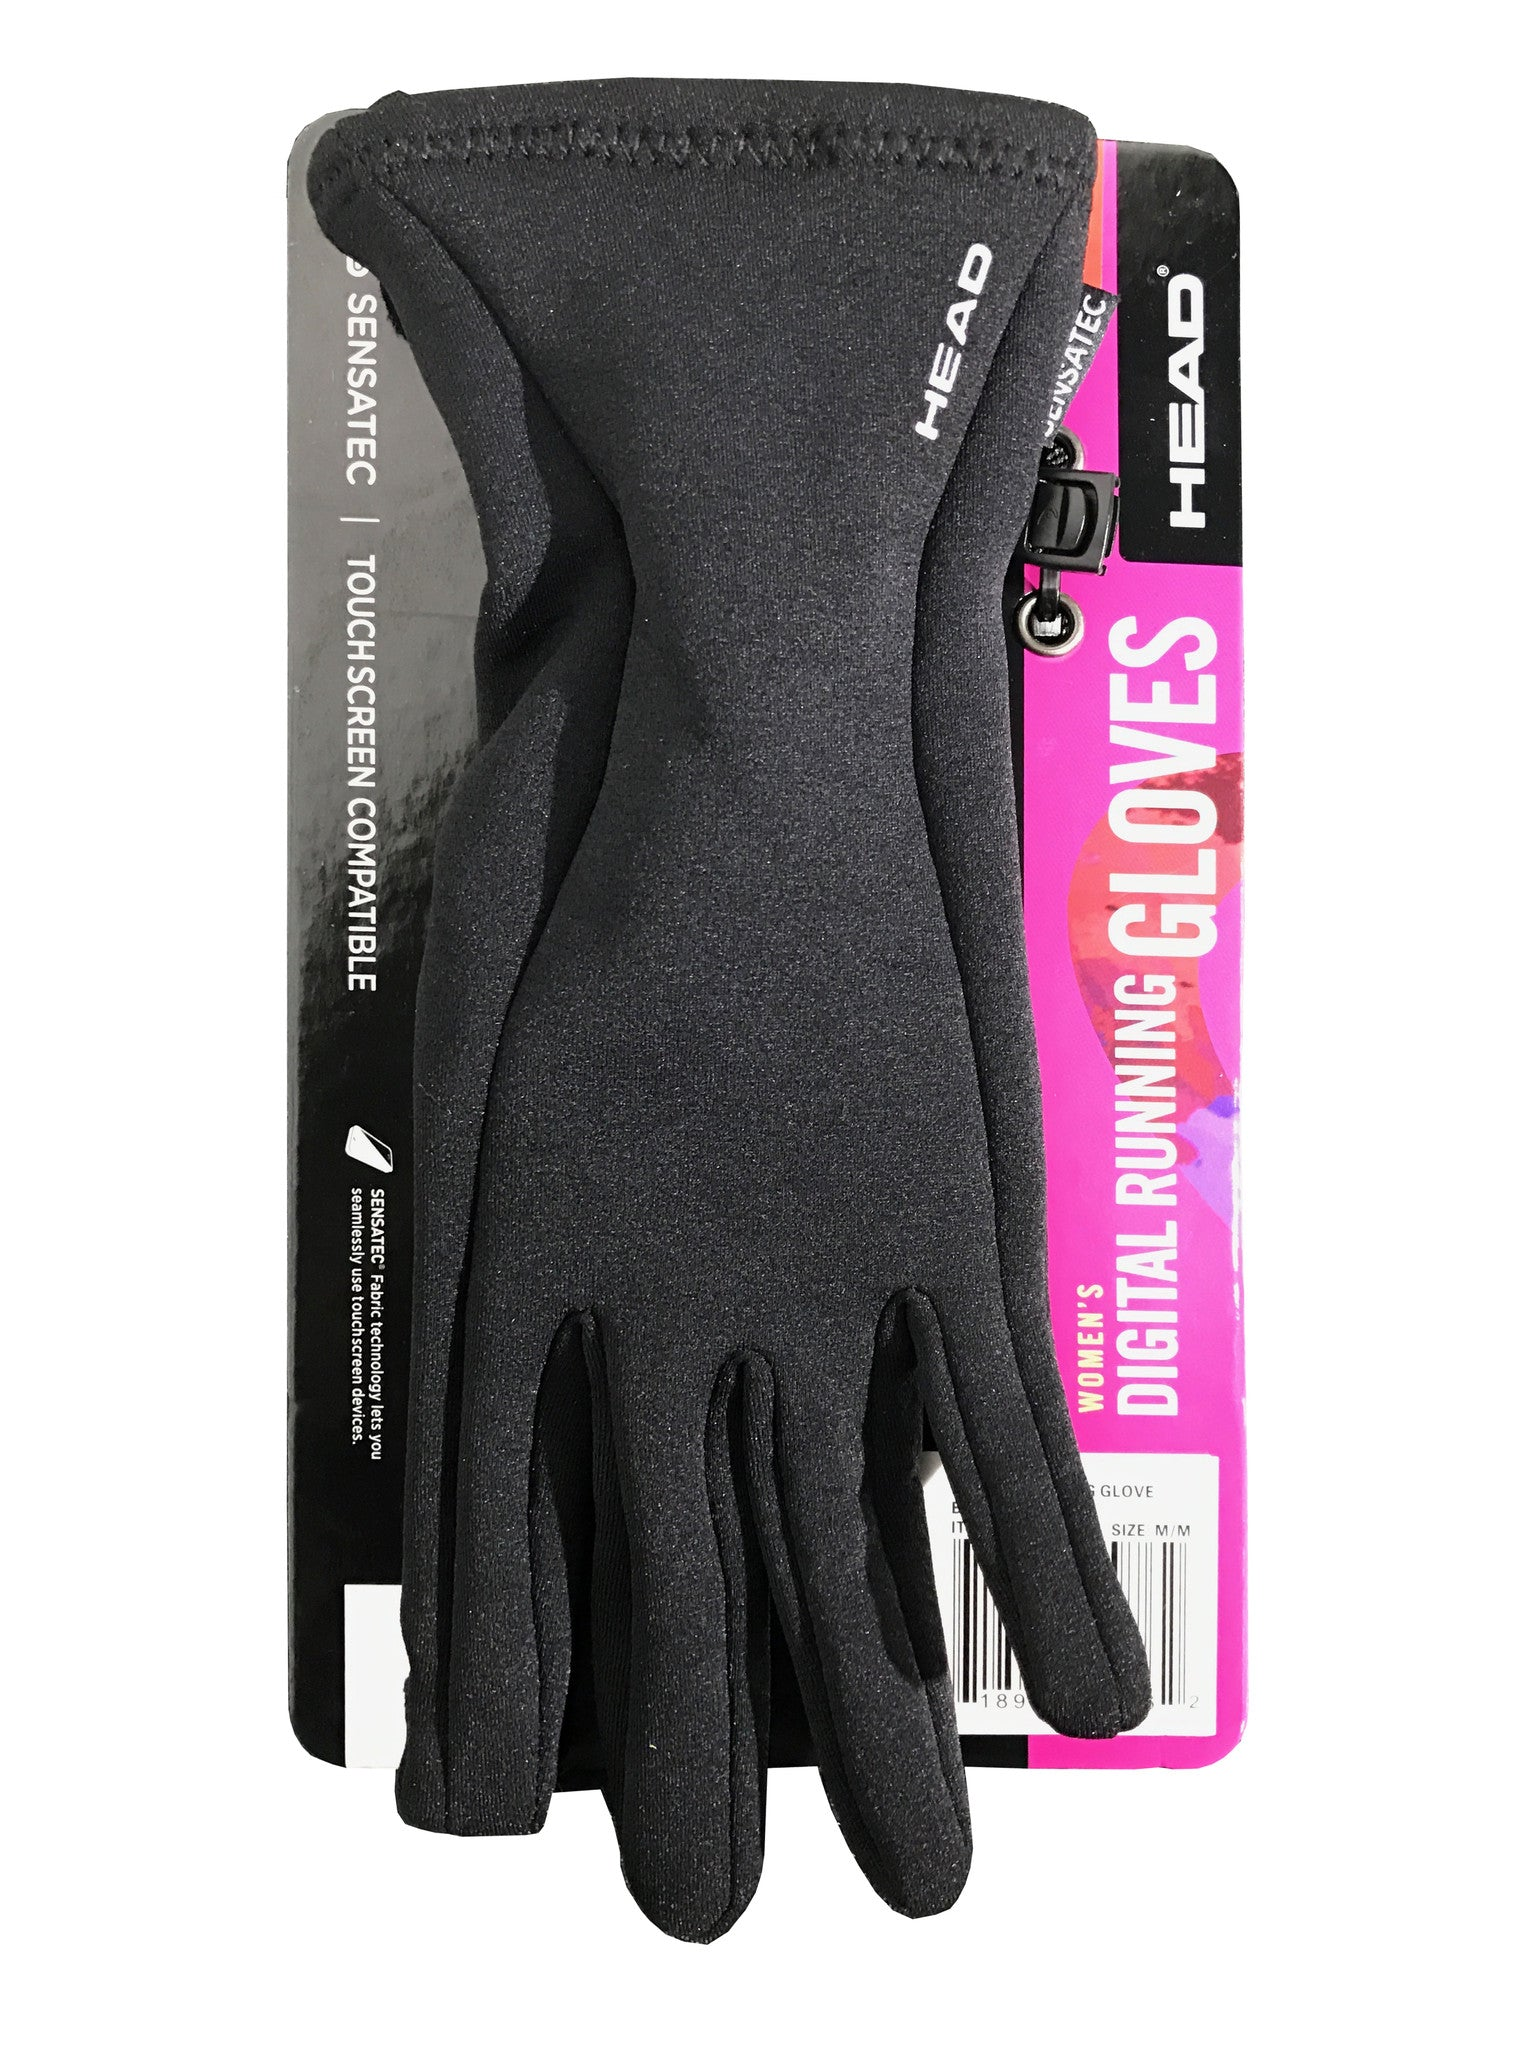 Head Women's Digital Running Gloves Sensatec Touchscreen Compatible M or S sizes [M]